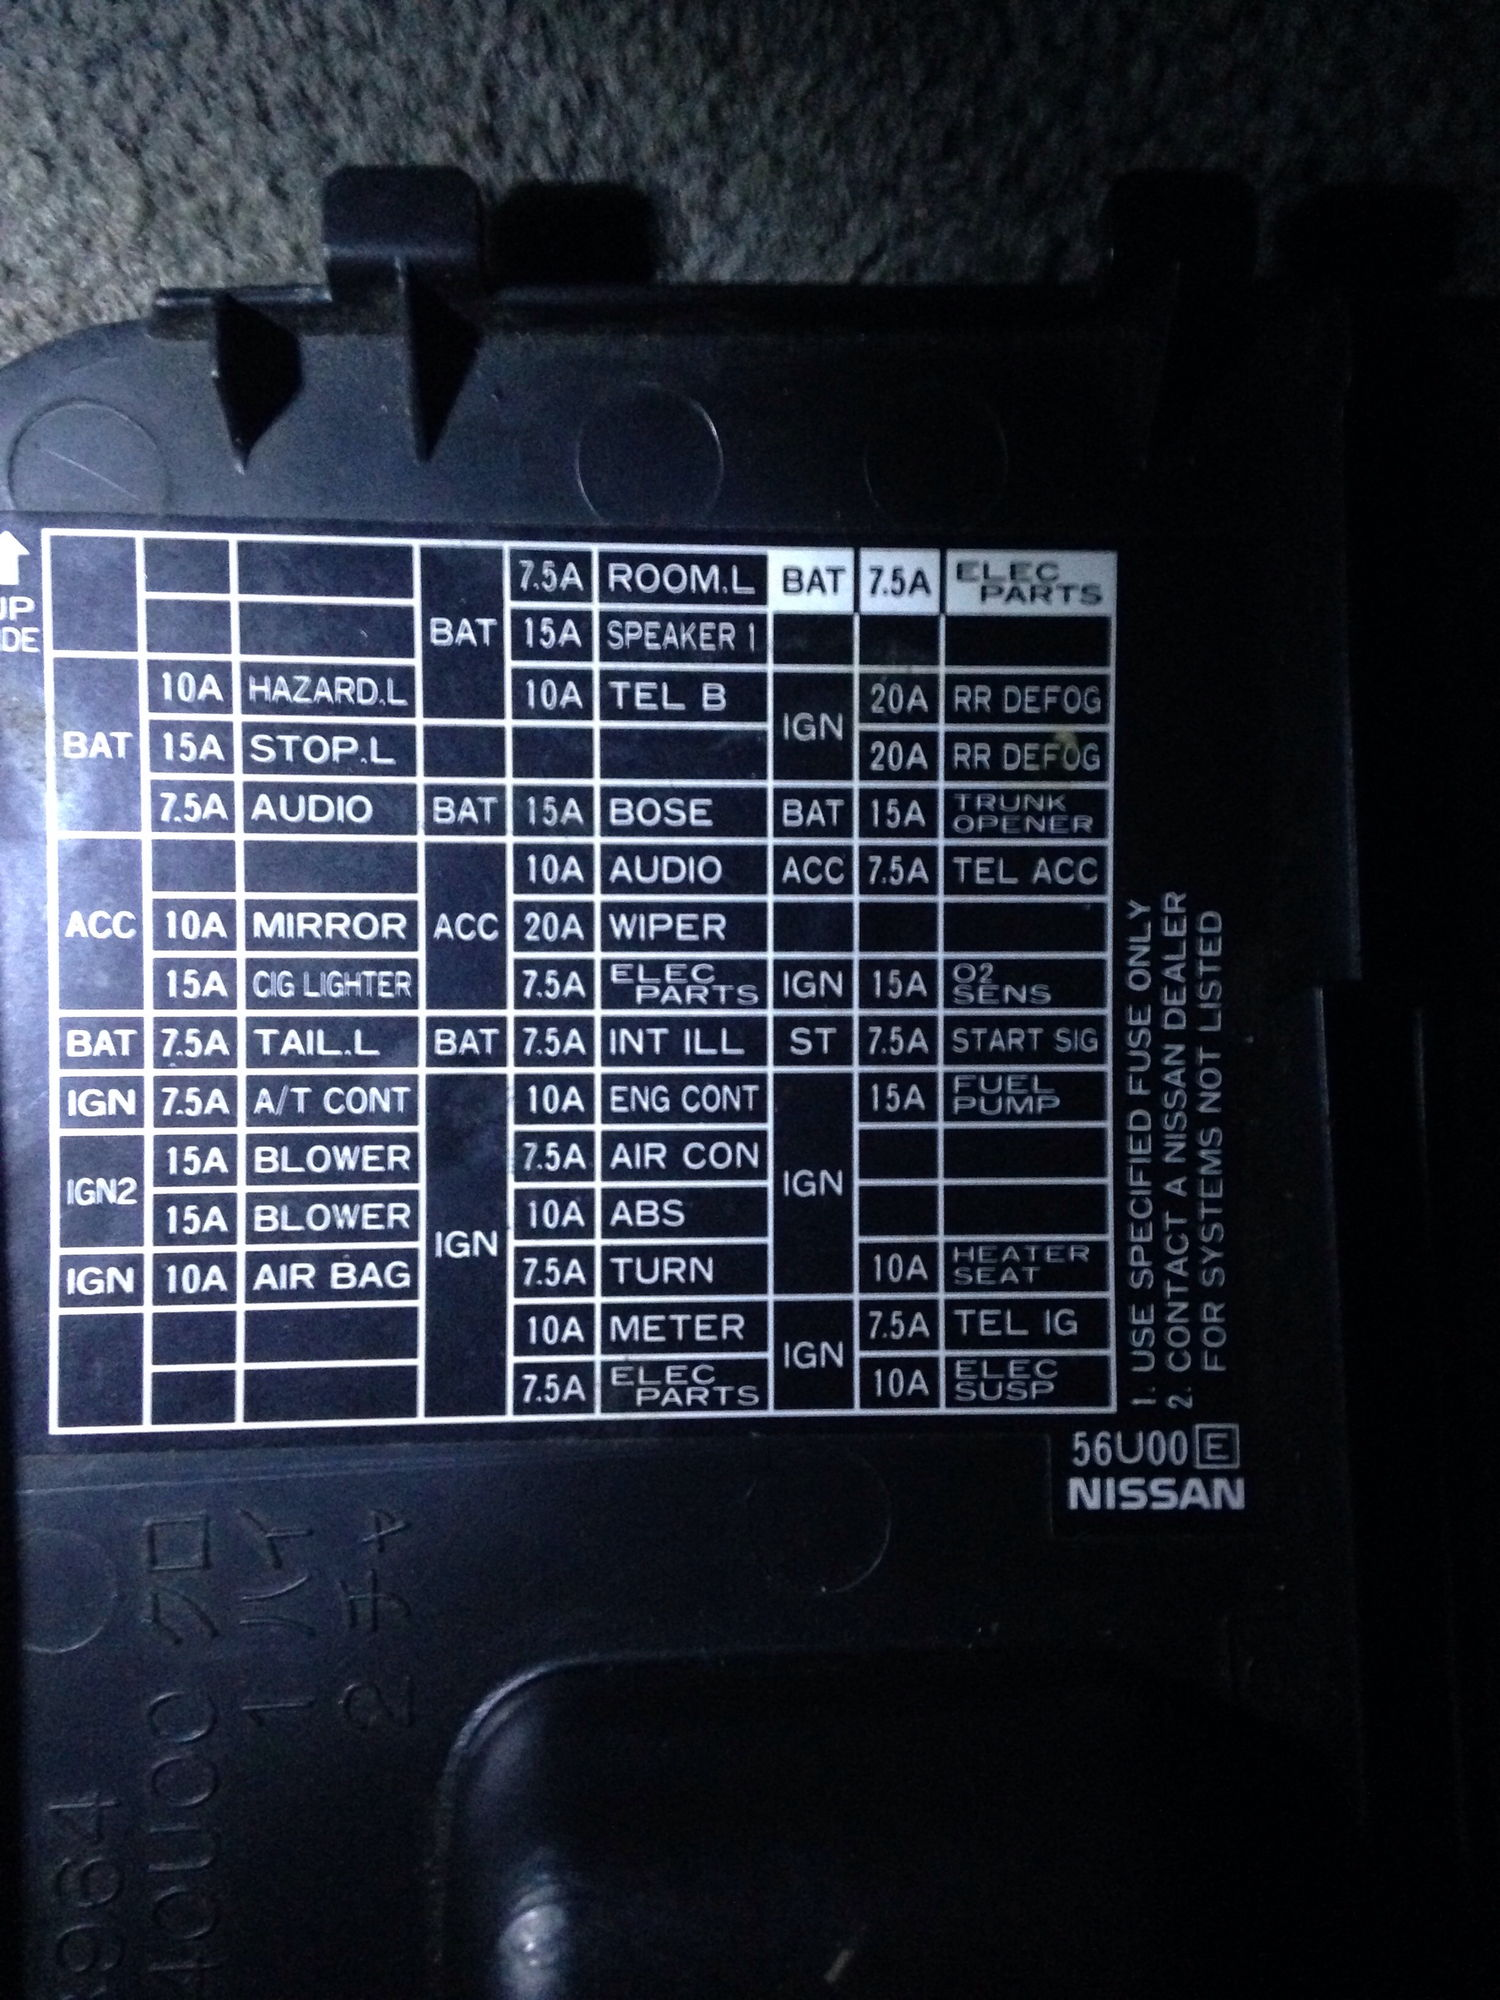 hight resolution of i look at the interior fuse box and the fuses and diagram don t match